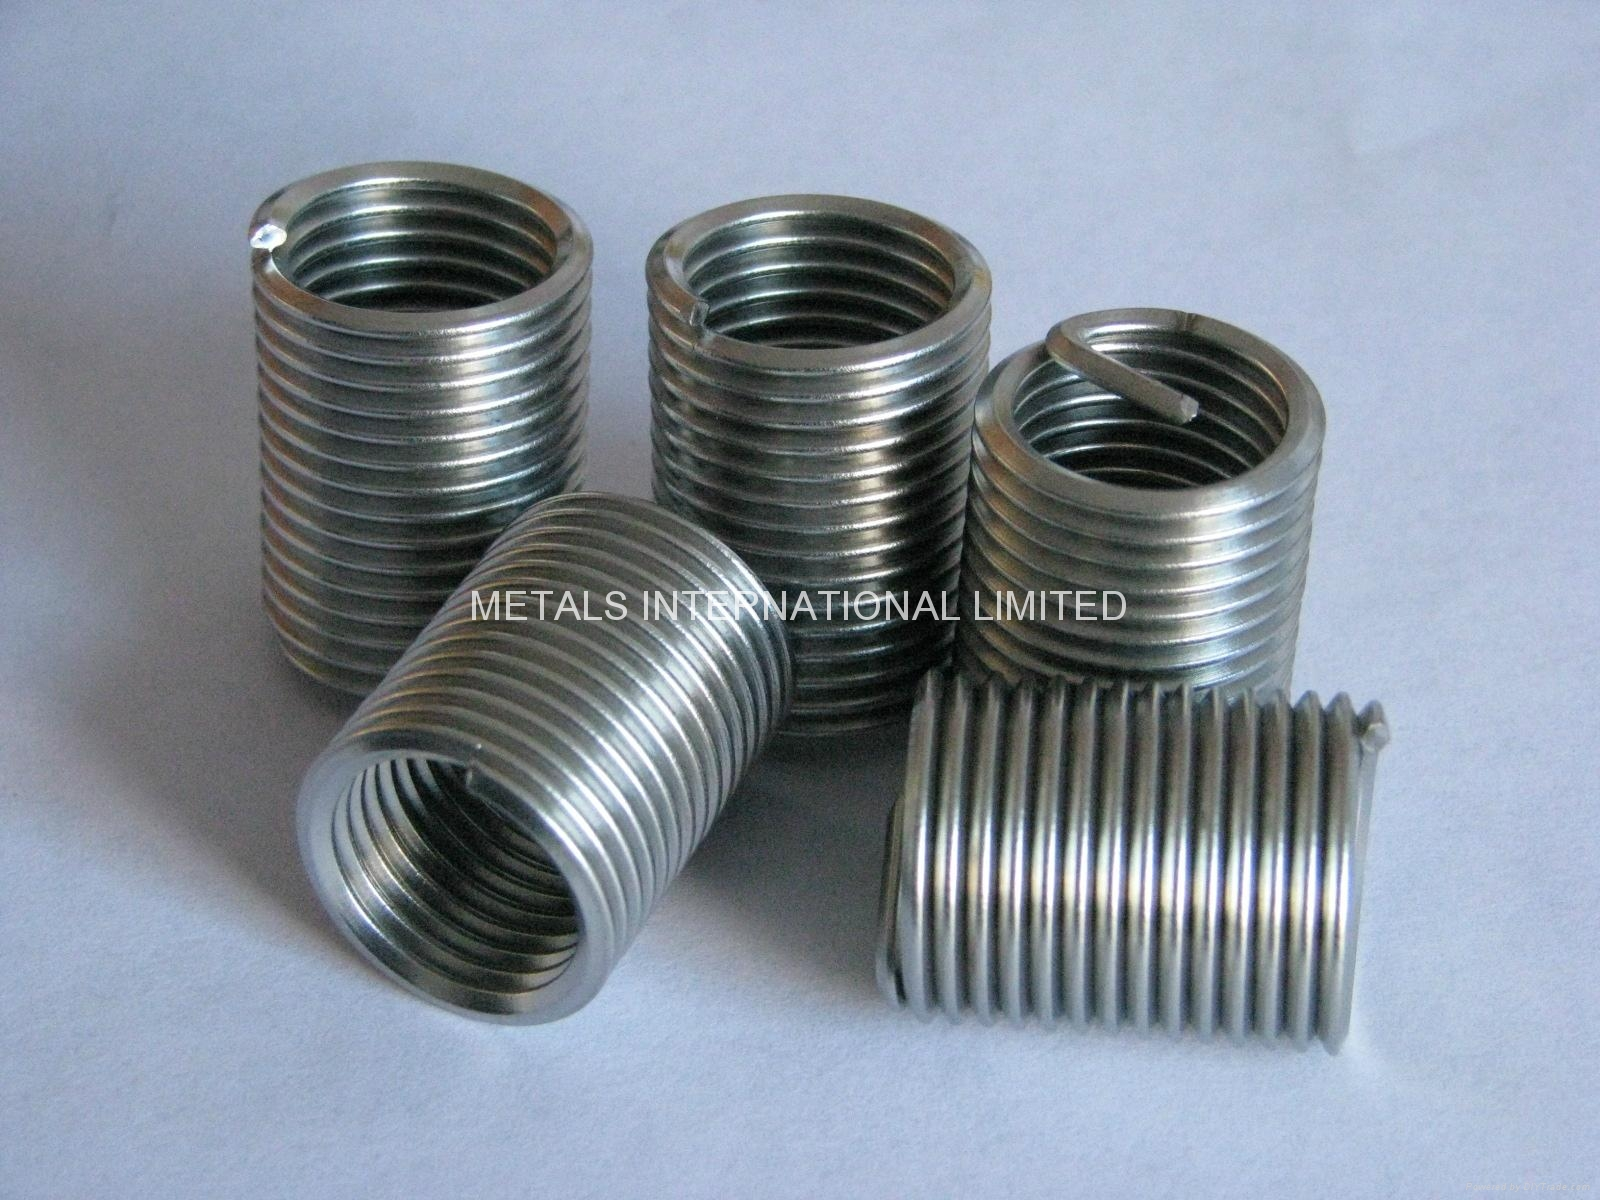 ASTM A193,ASTM A194,ASTM A320,AST-Bolts,Nuts,Screws,and studs 6